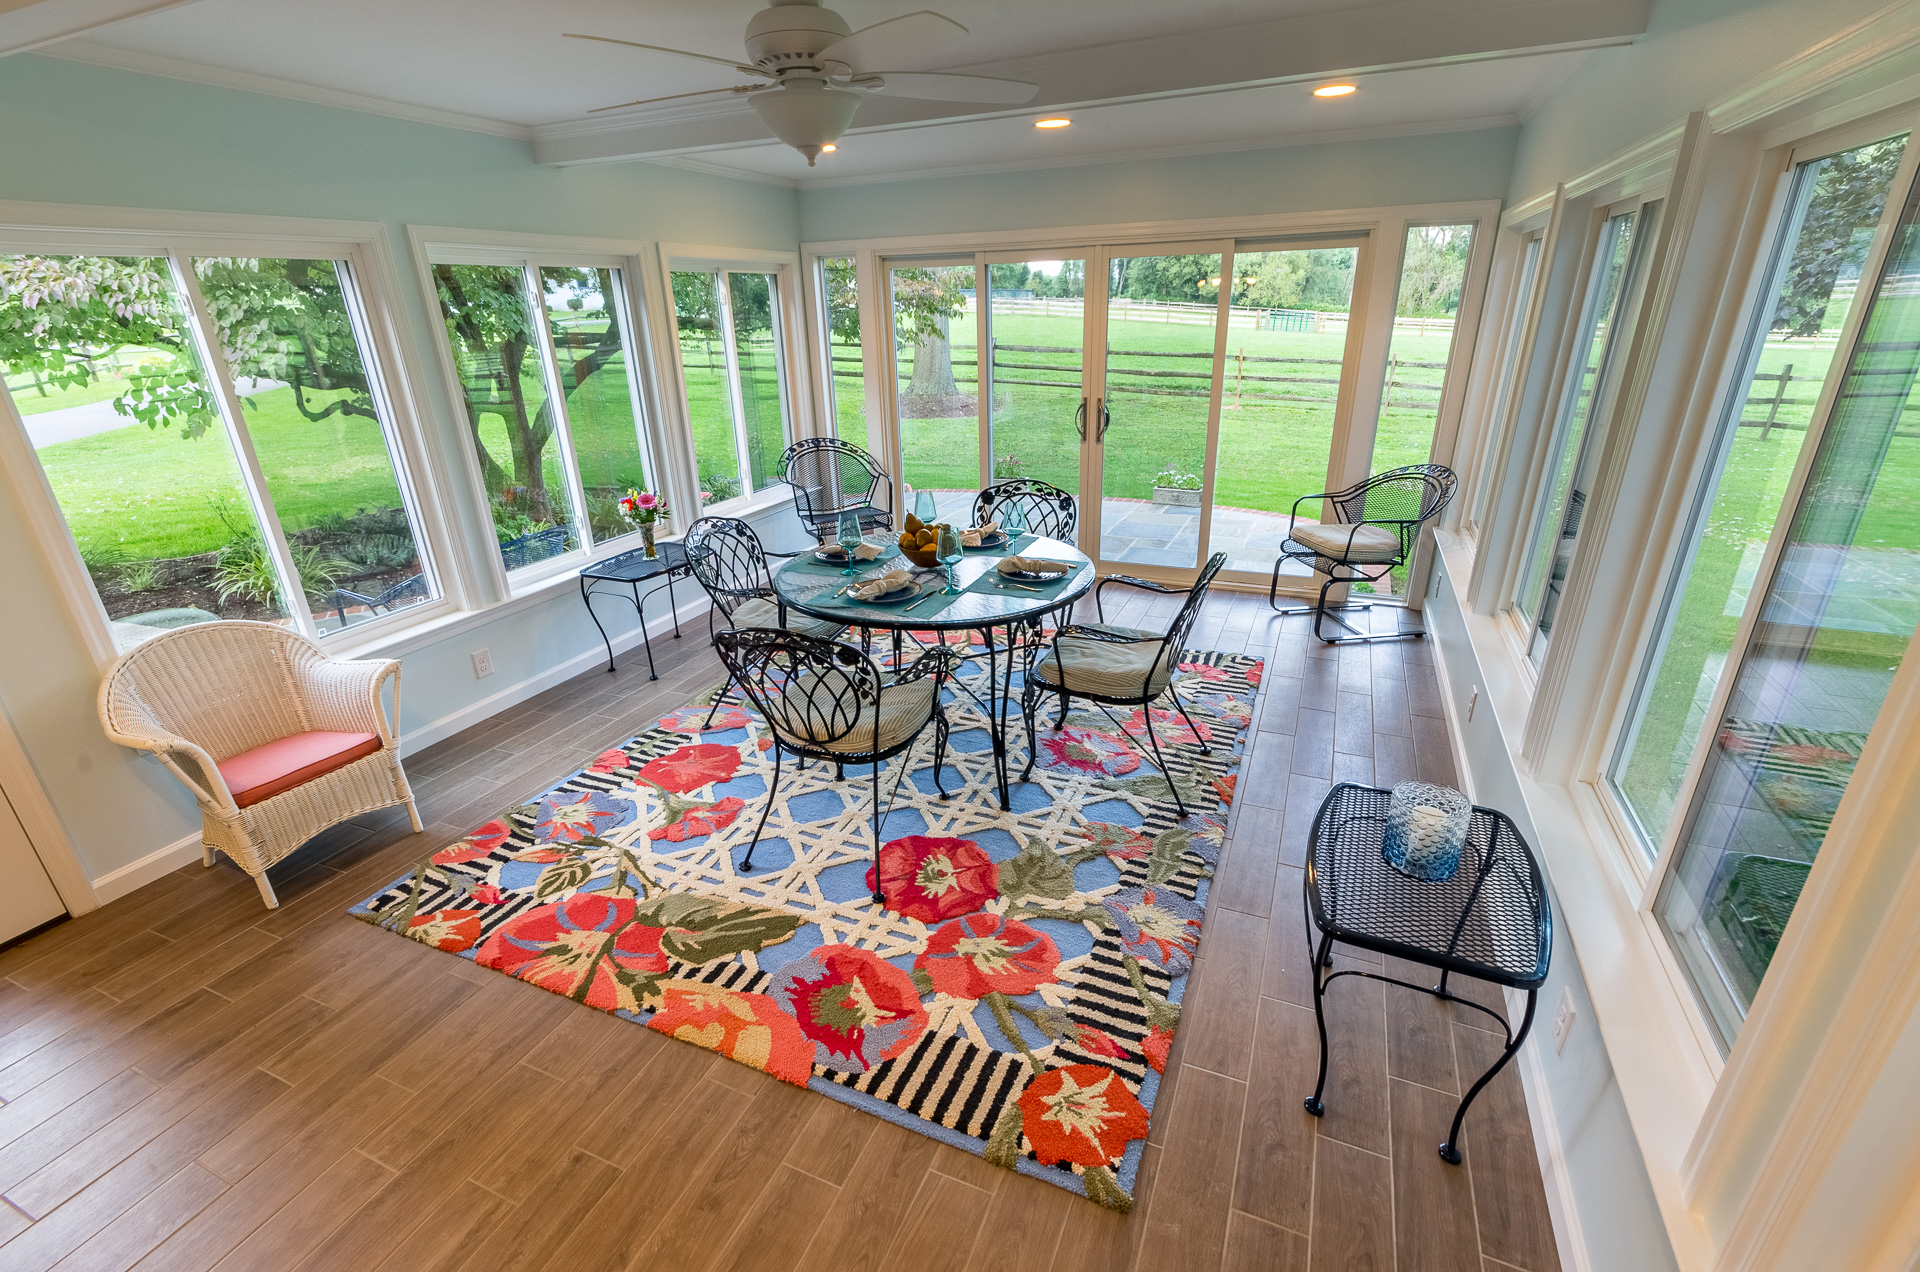 A Sunroom is another wonderful way to enjoy the outdoors